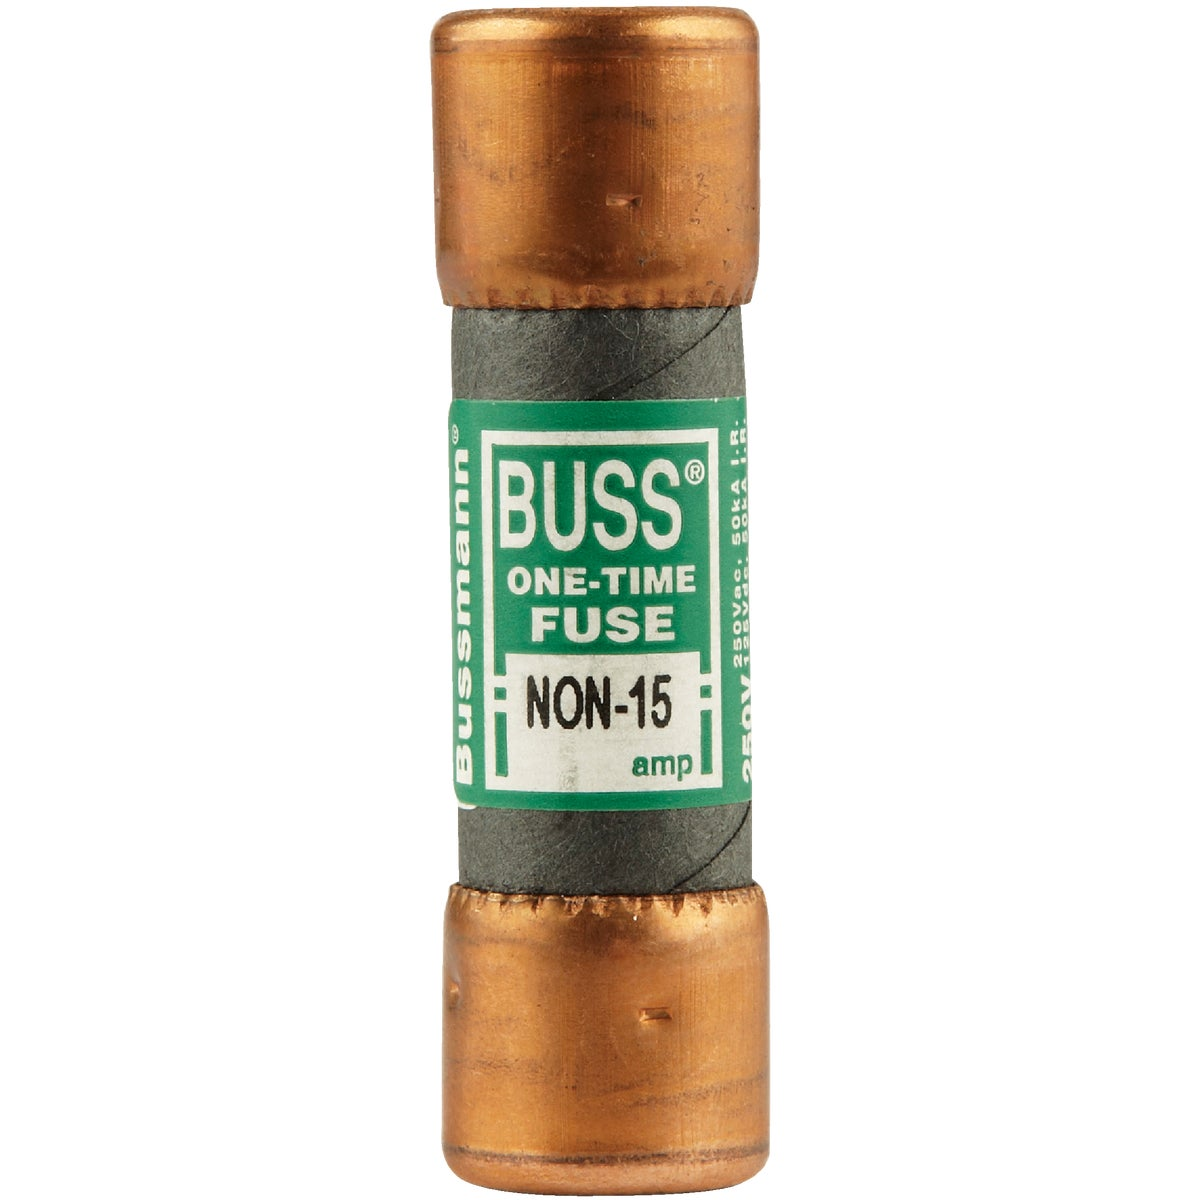 15A NON CARTRIDGE FUSE - NON-15 by Bussmann Cooper